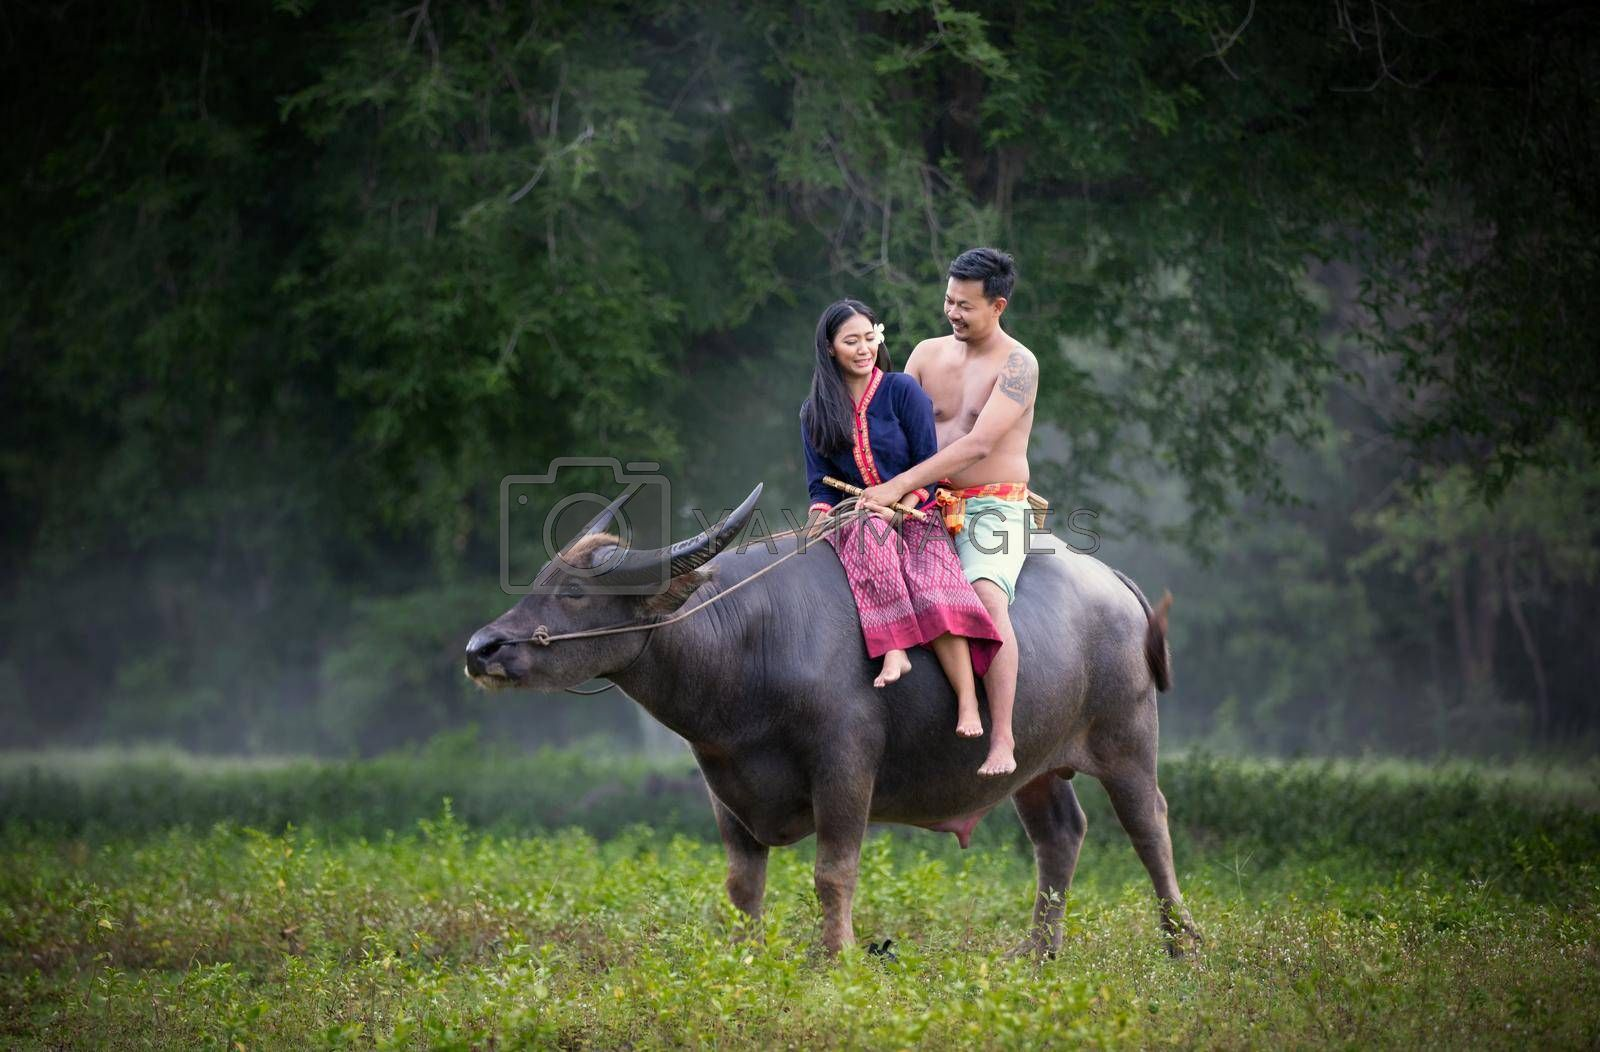 Men and women sitting by tree and buffalo in rural fields